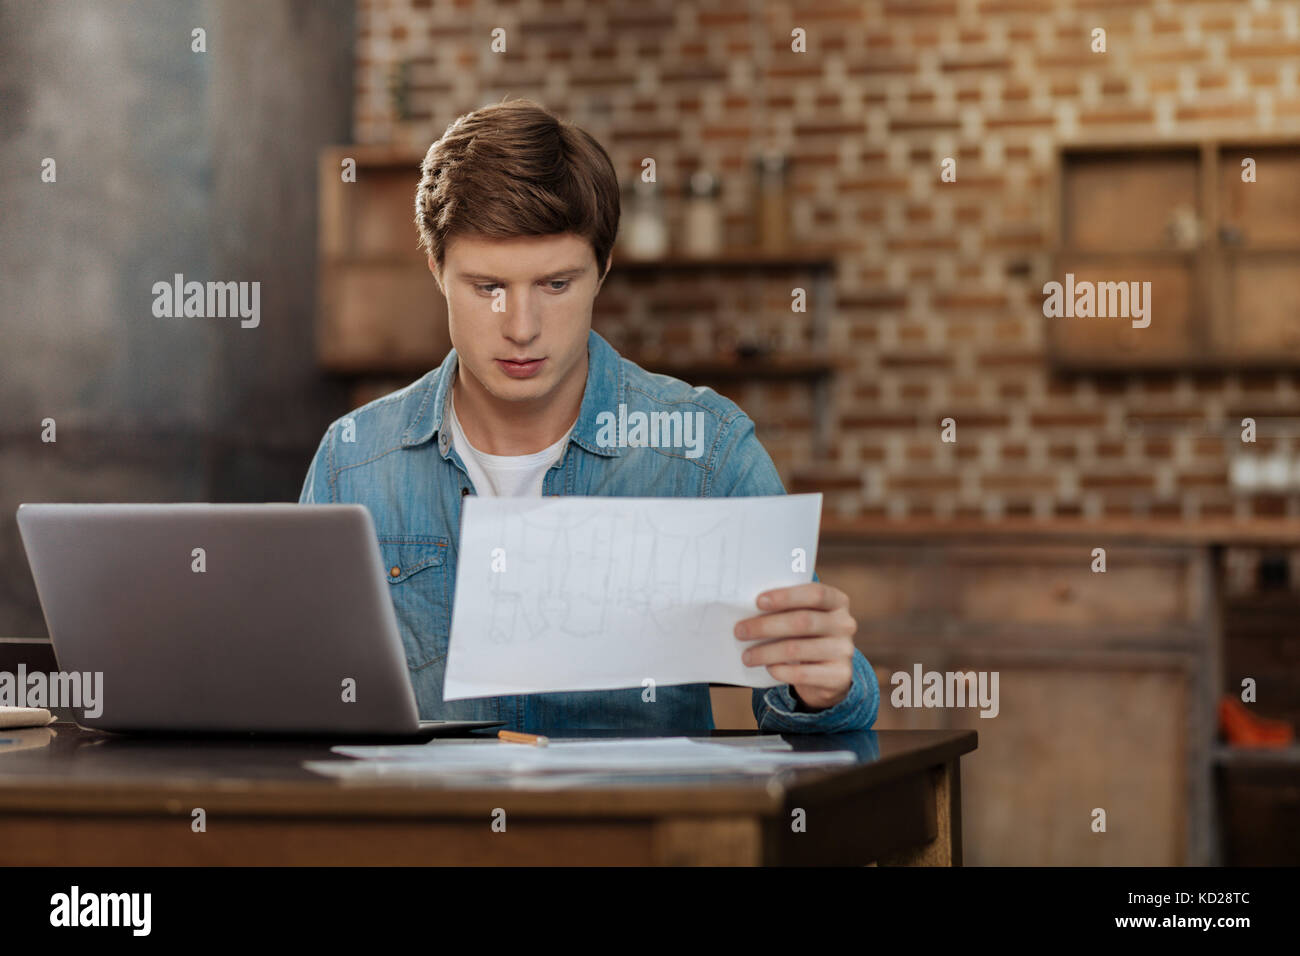 Handsome young man studying the blueprint - Stock Image